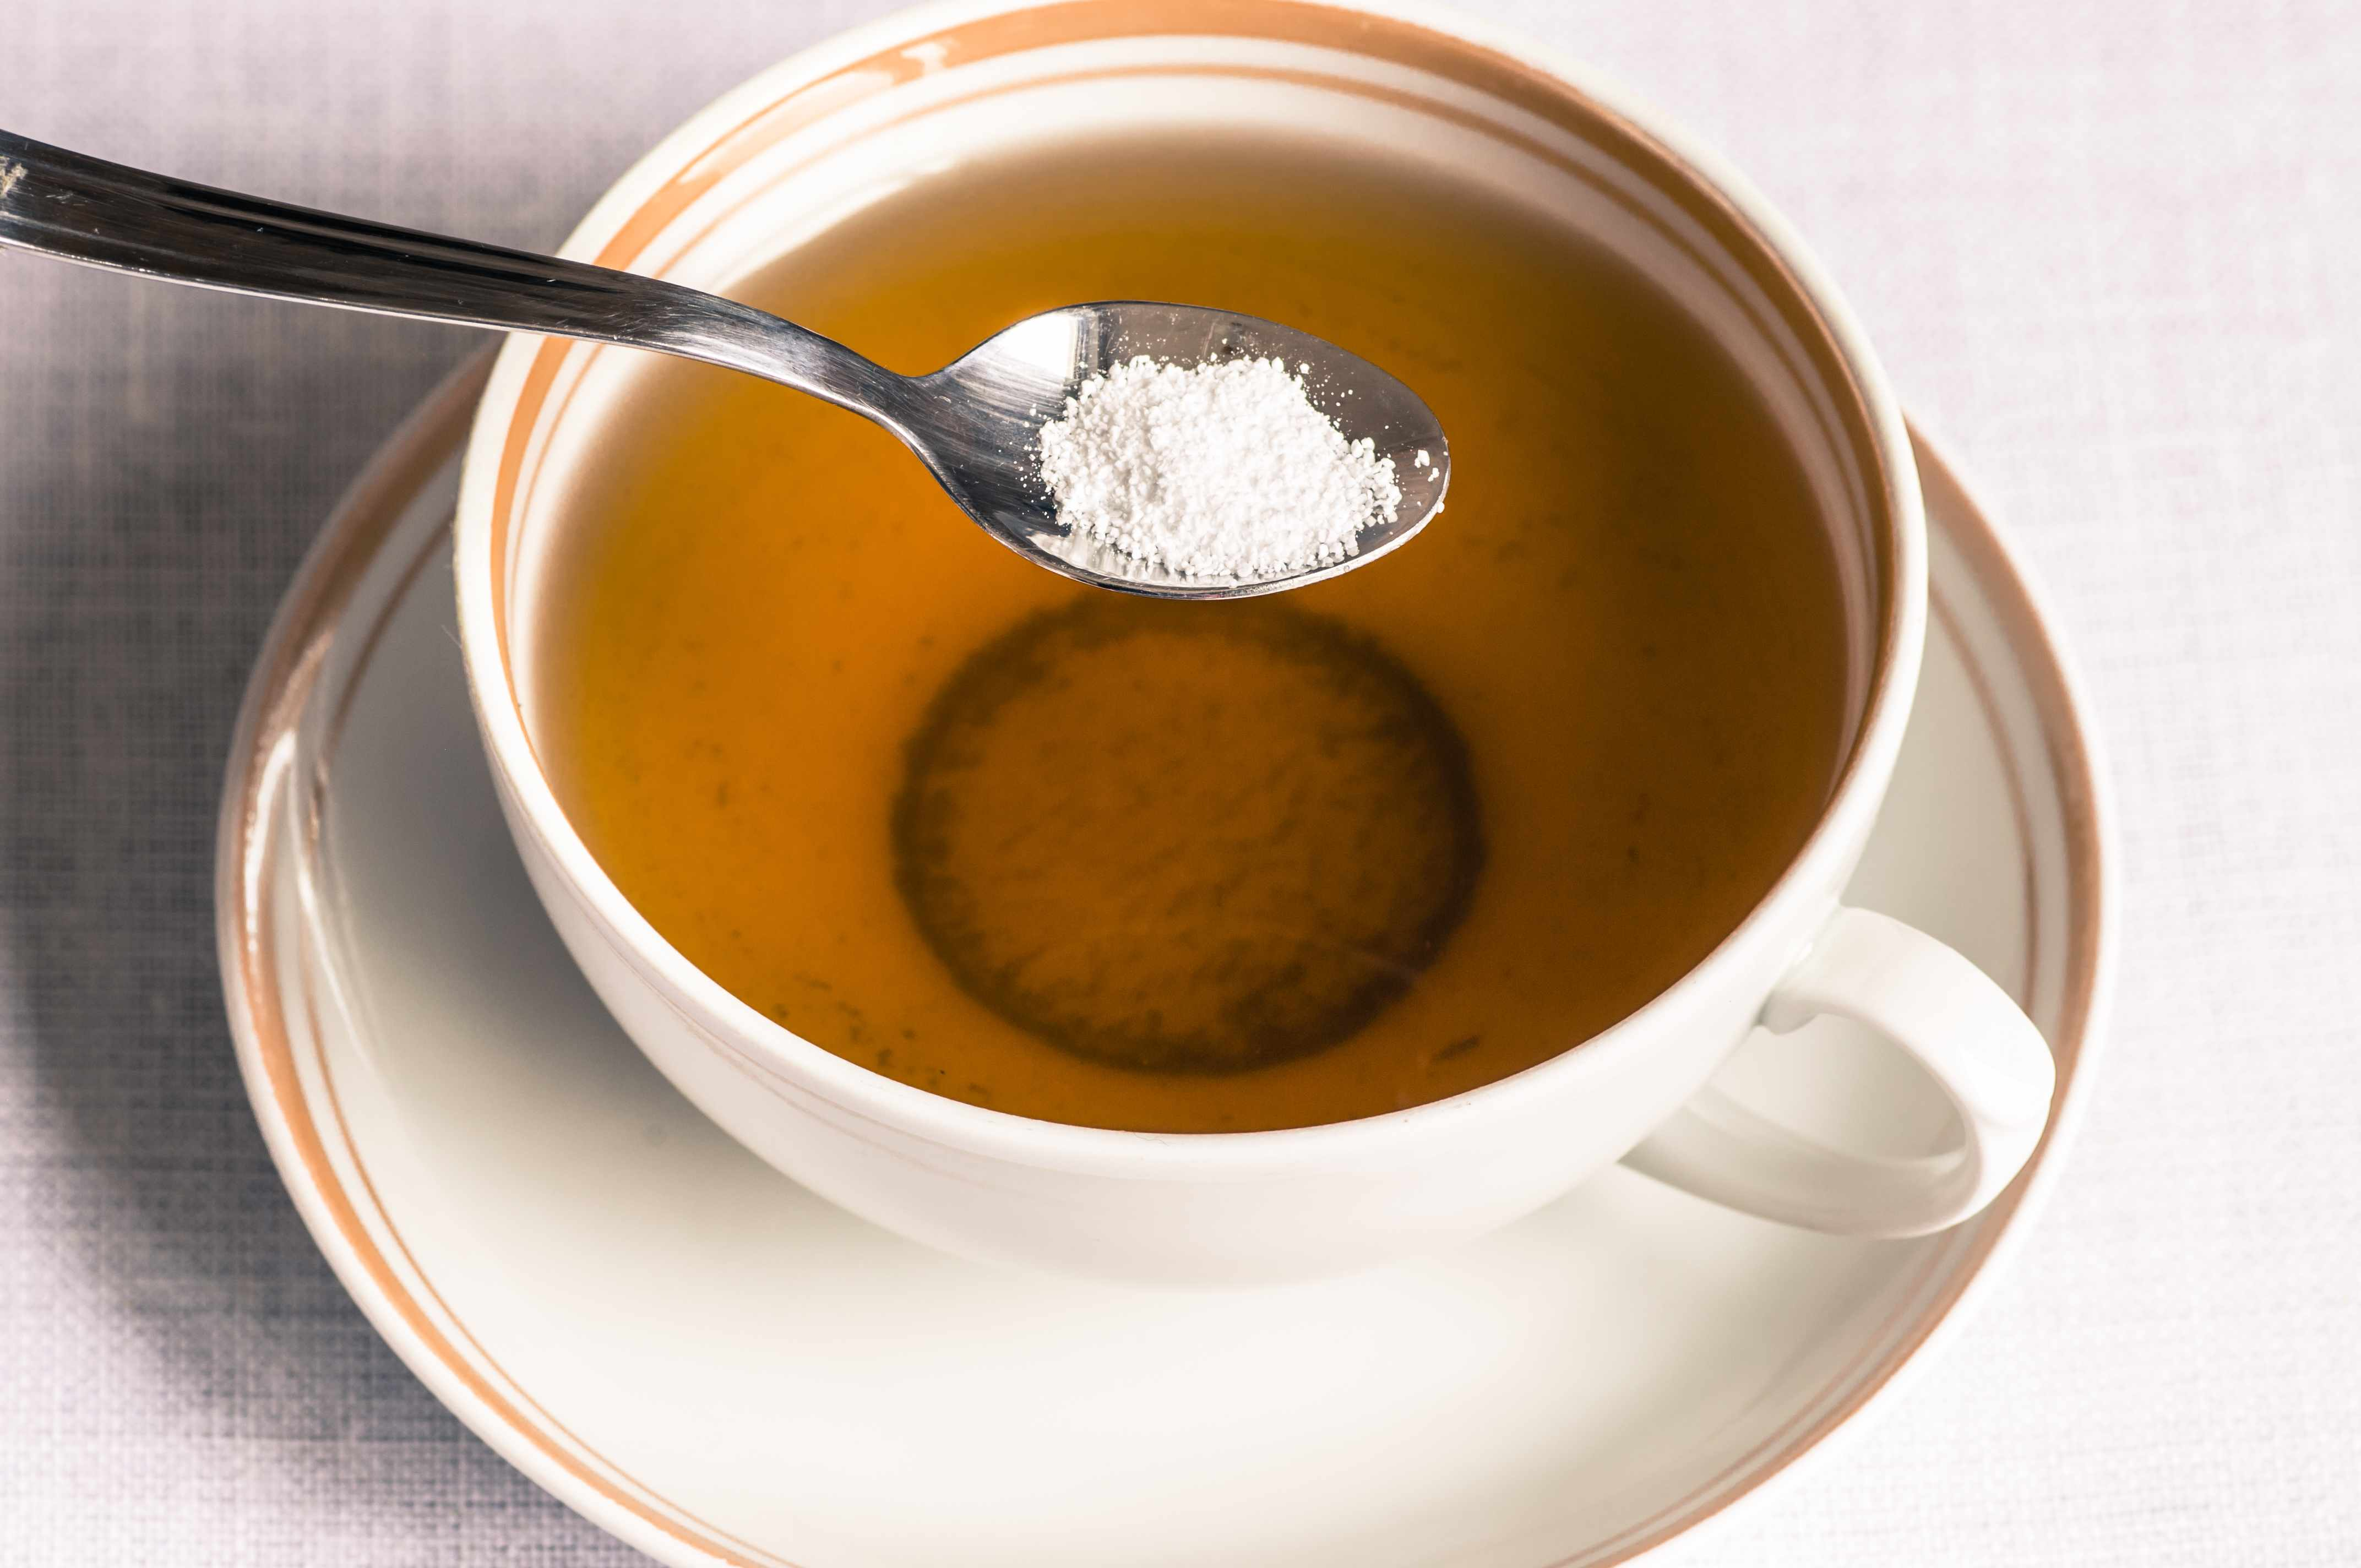 a spoonful of artificial sweetener being put in a cup of tea